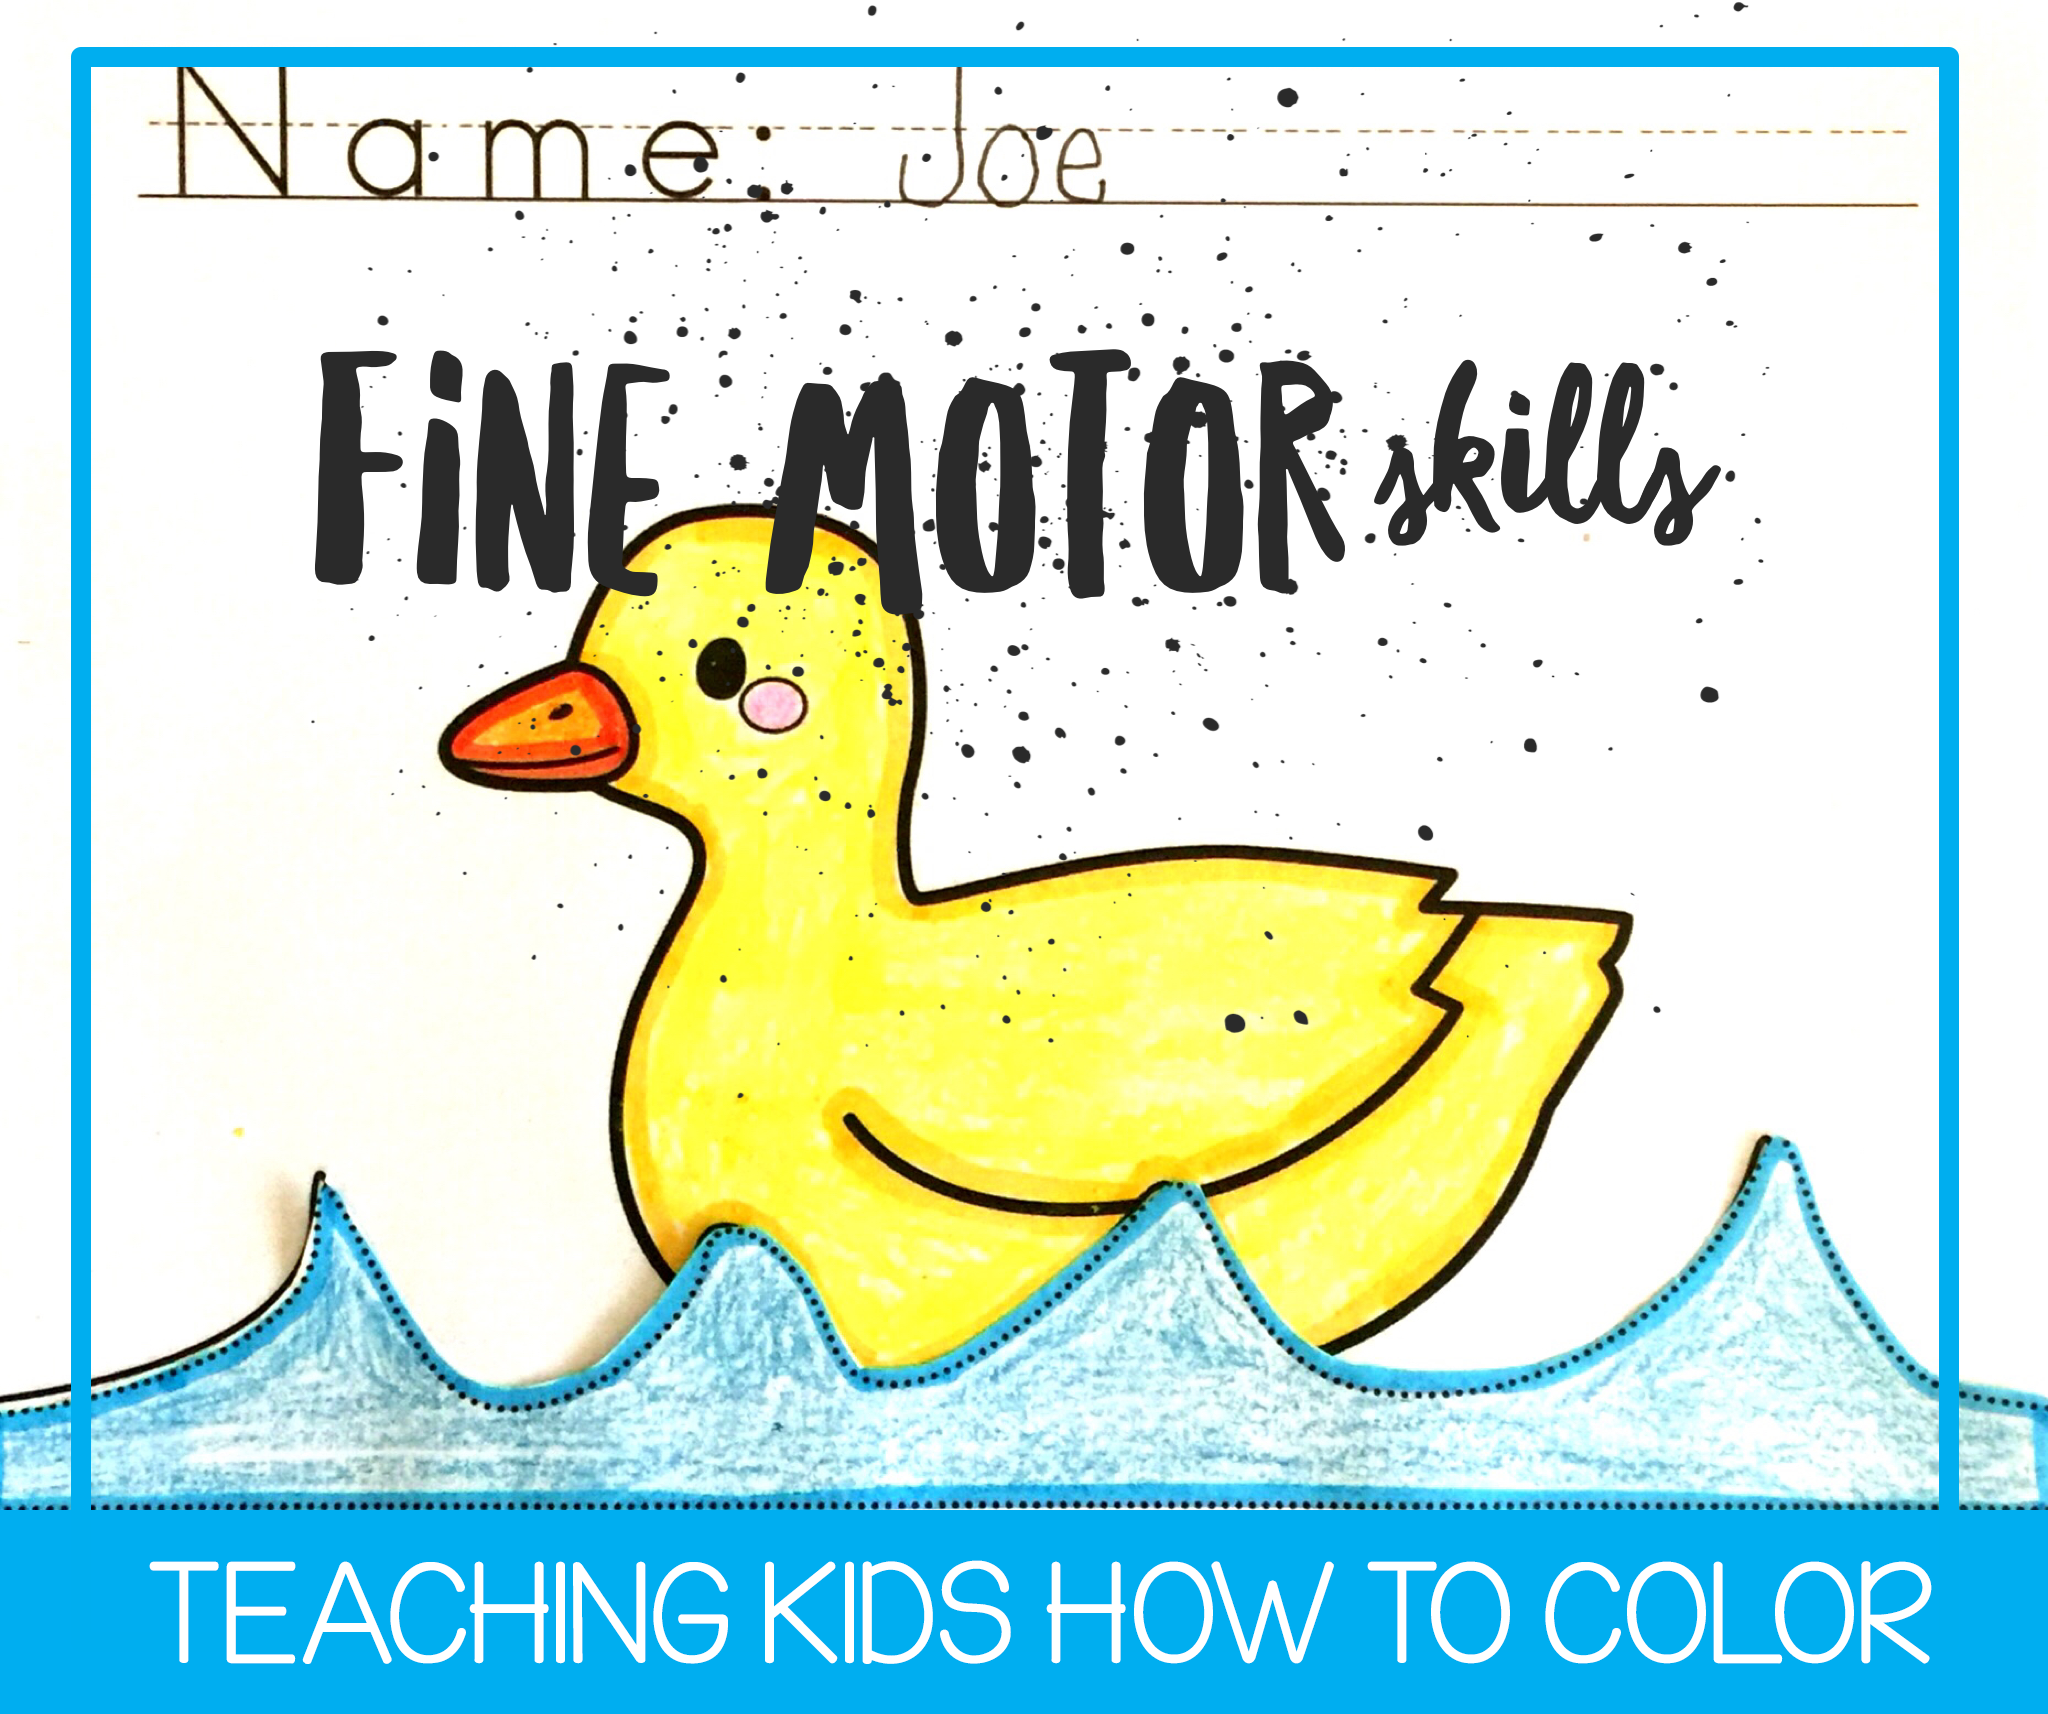 Teaching Kids How to Color Well